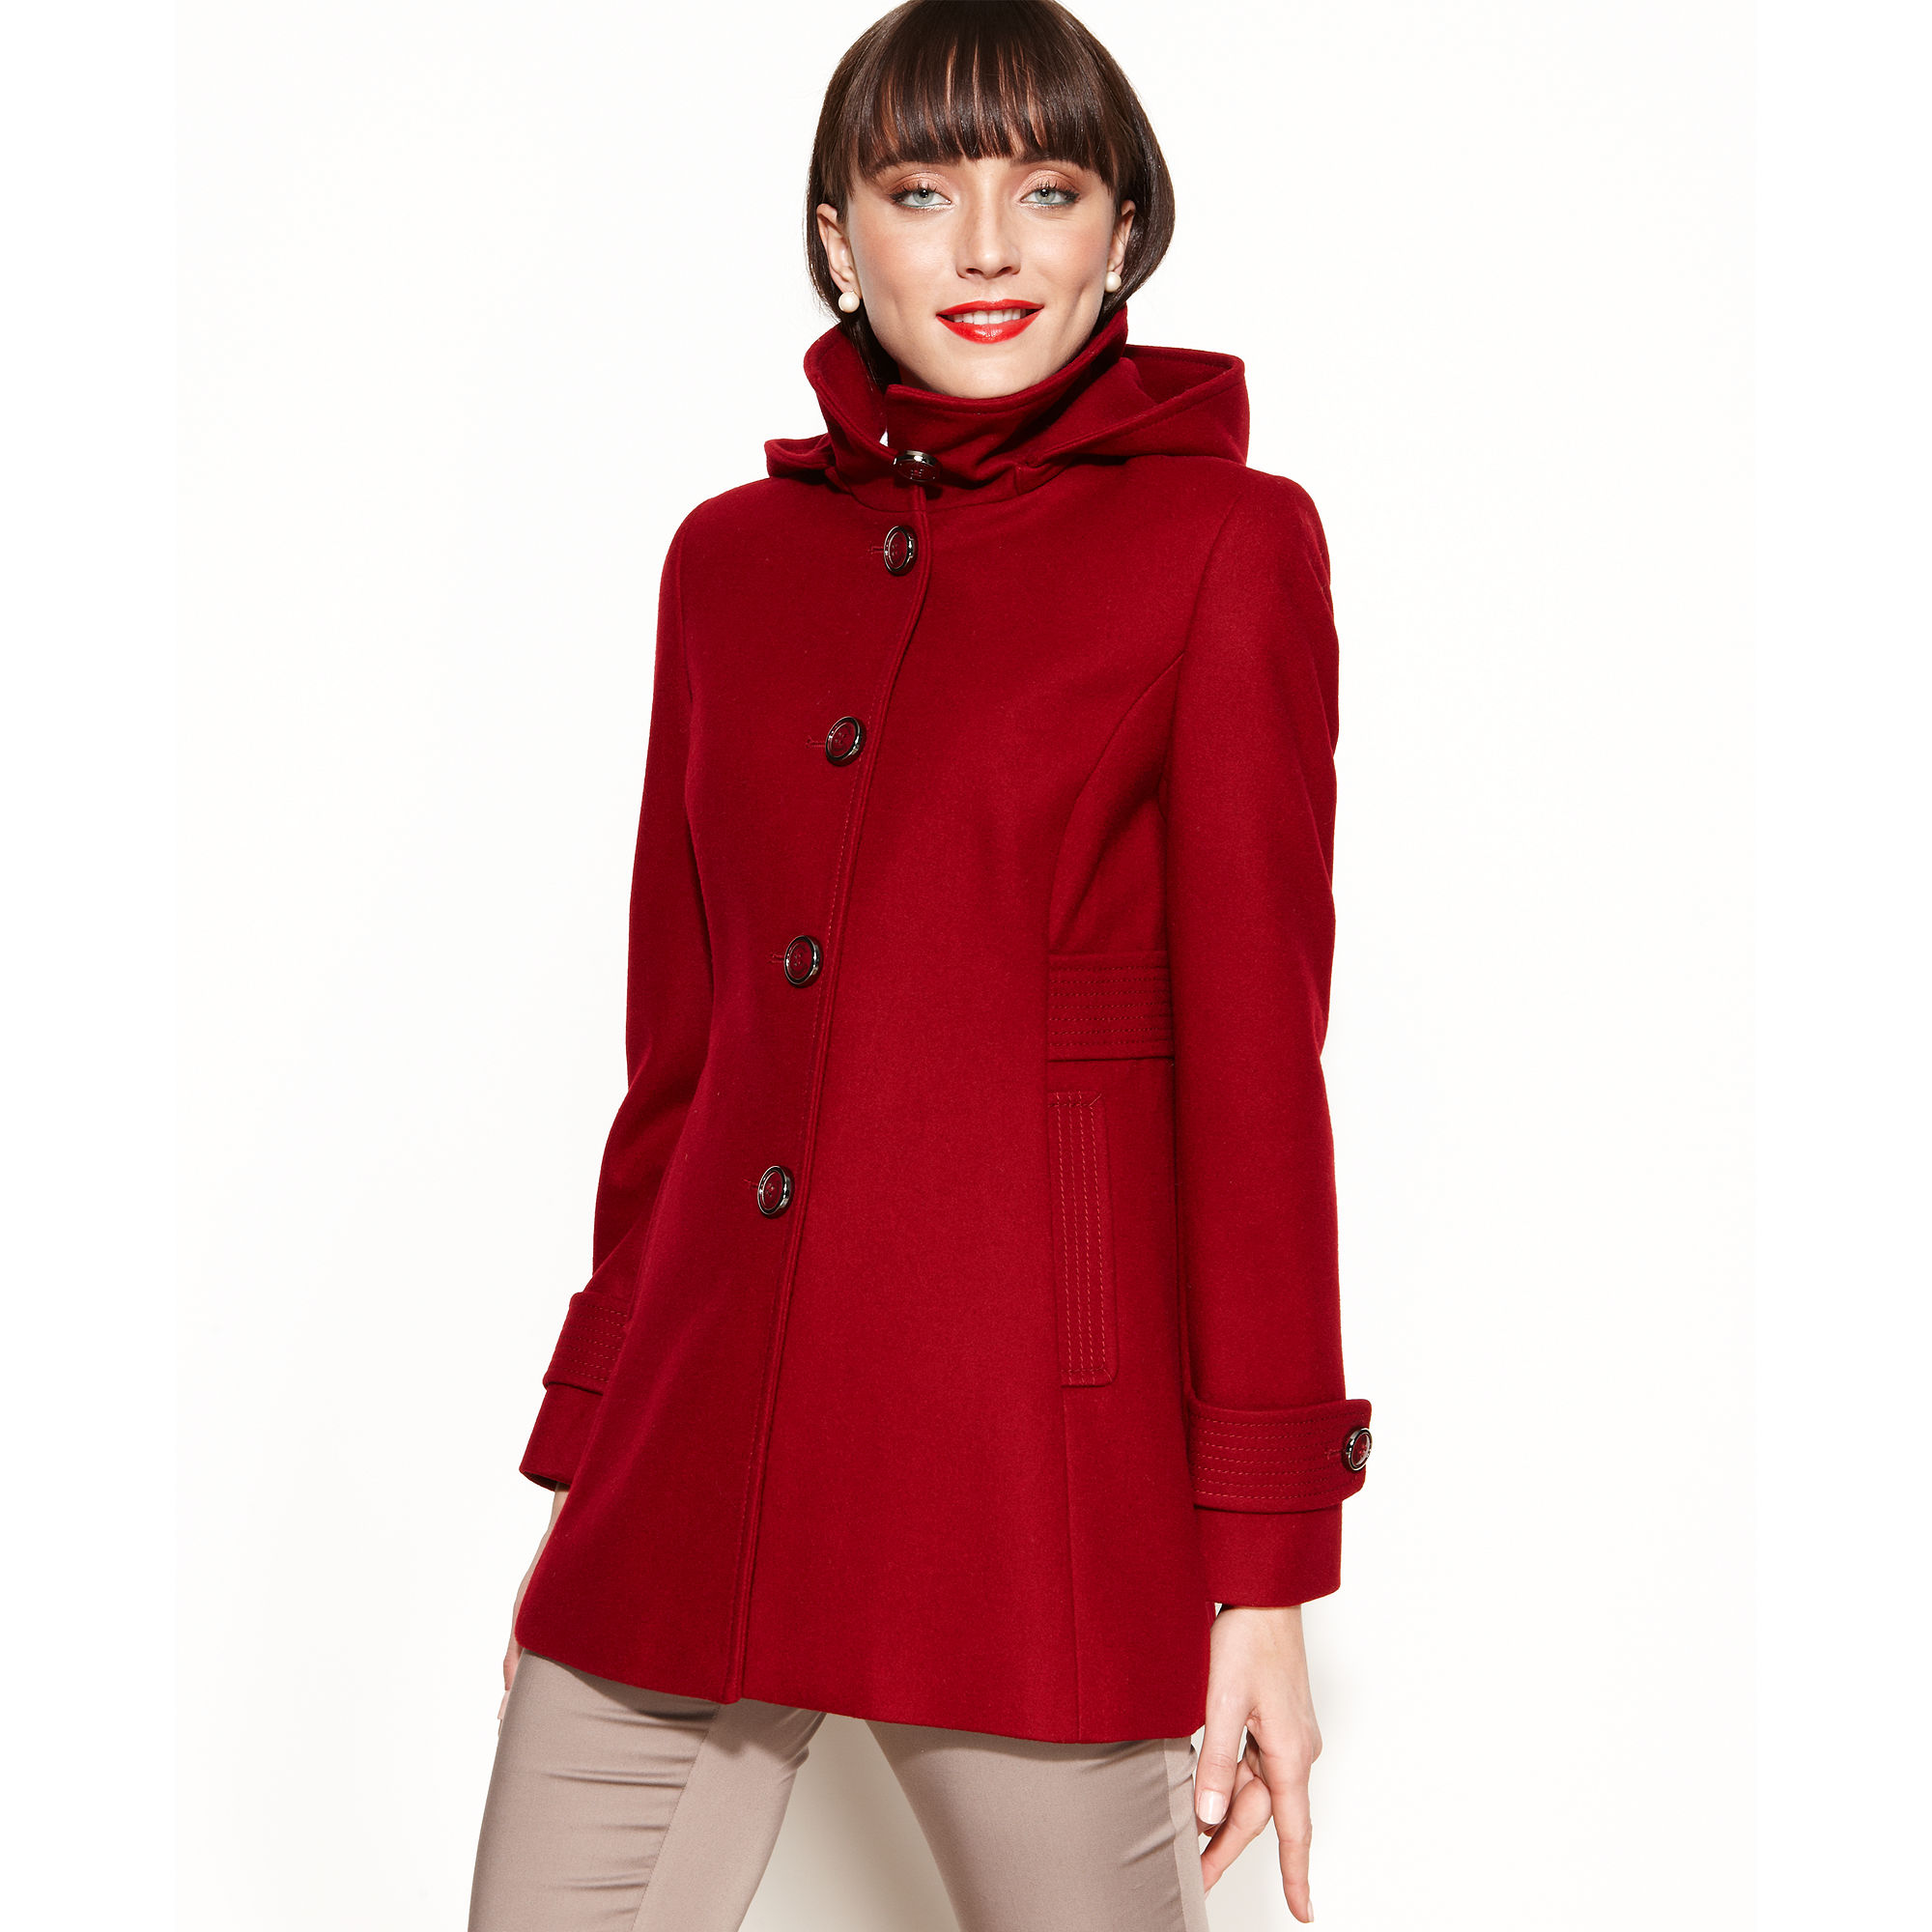 Macys Womens Wool Coats Photo Album - Reikian